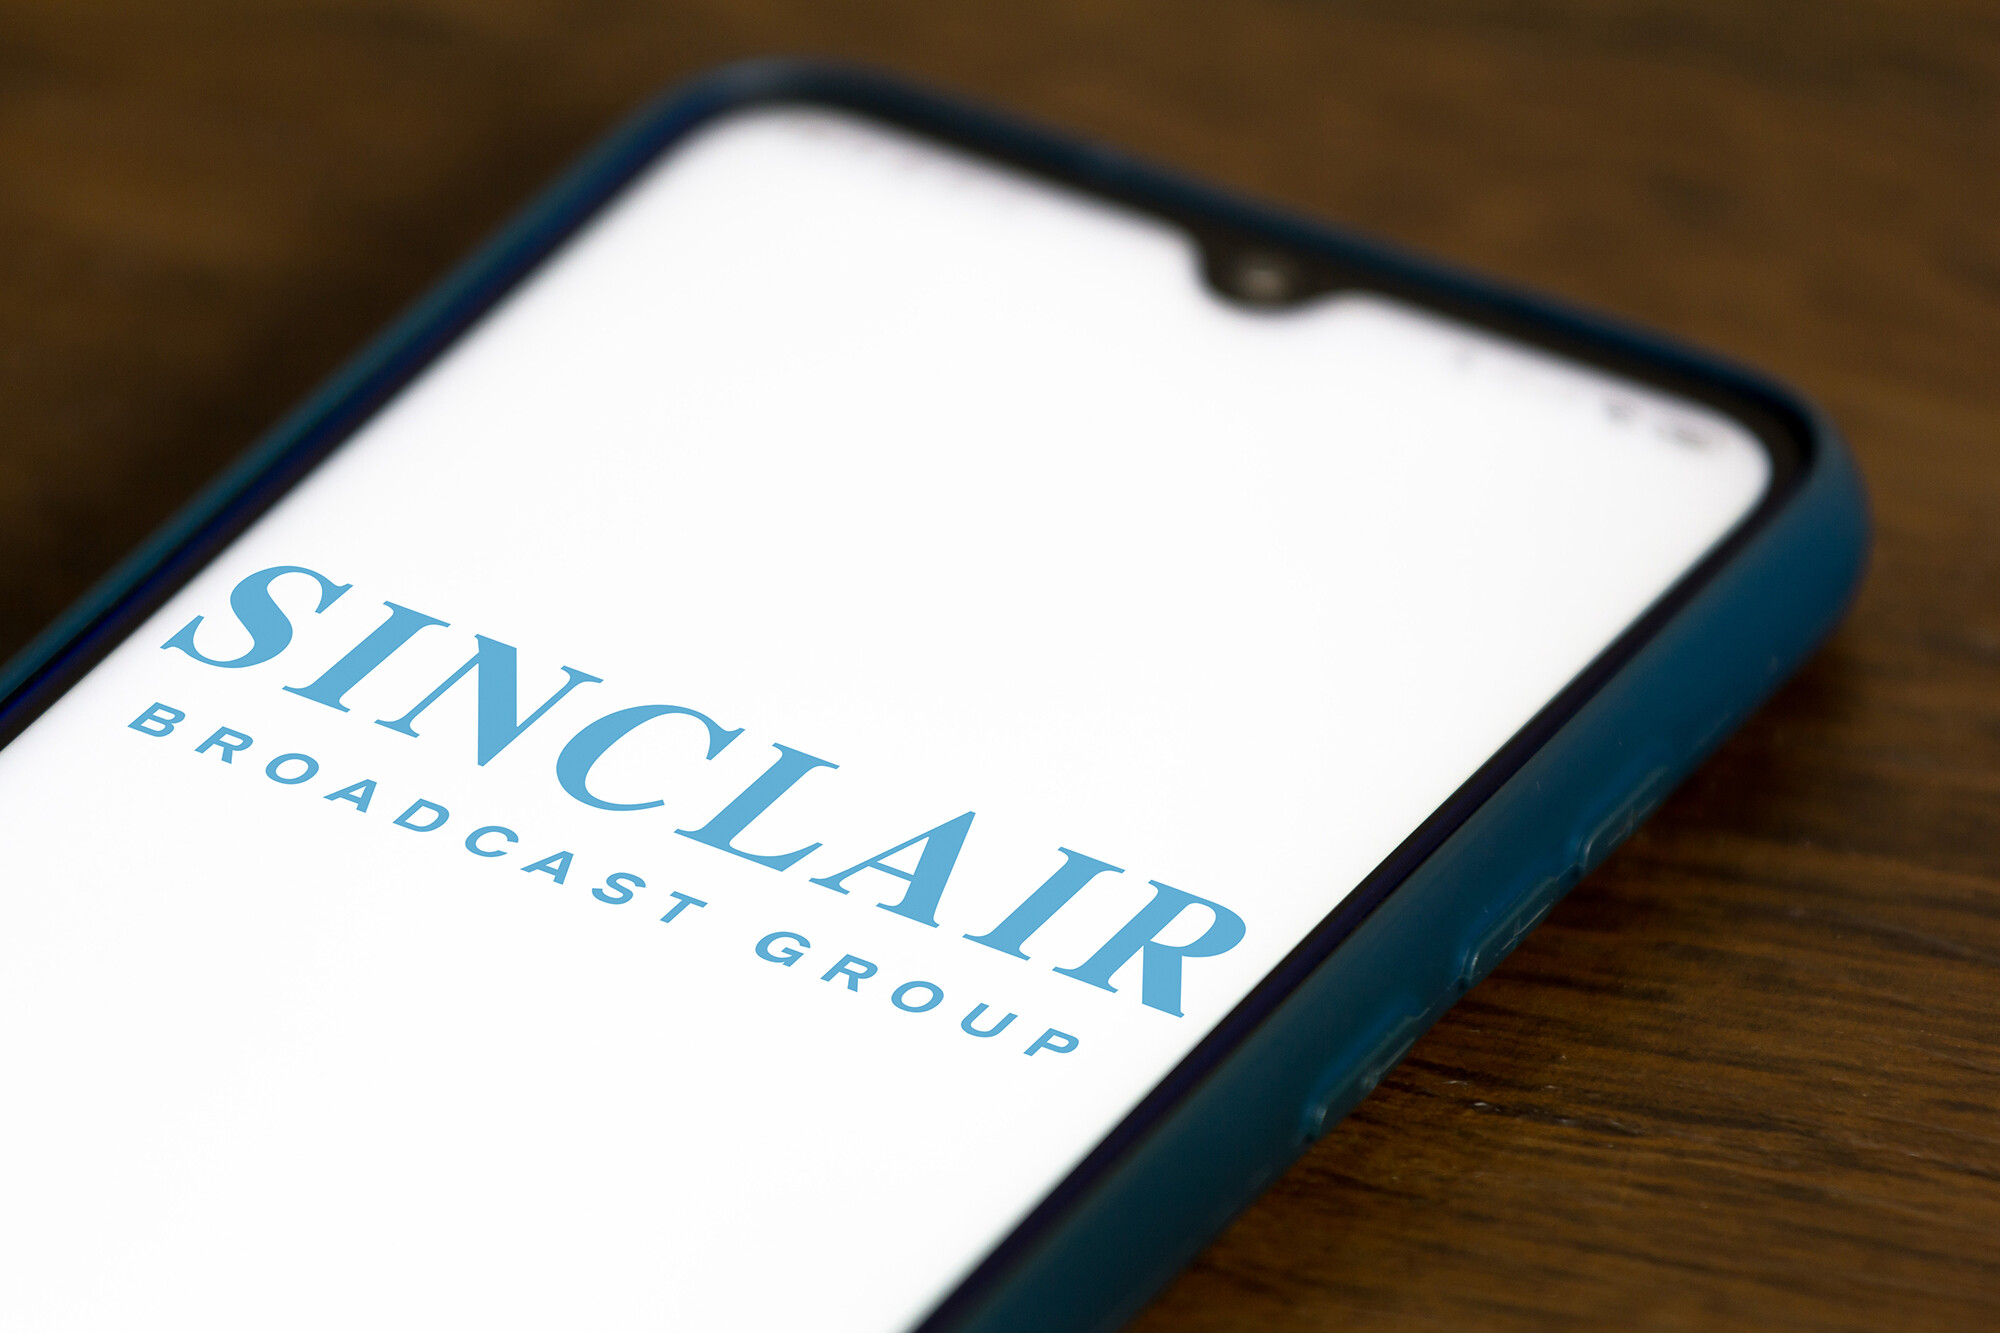 Sinclair Broadcast Group hit by ransomware attack